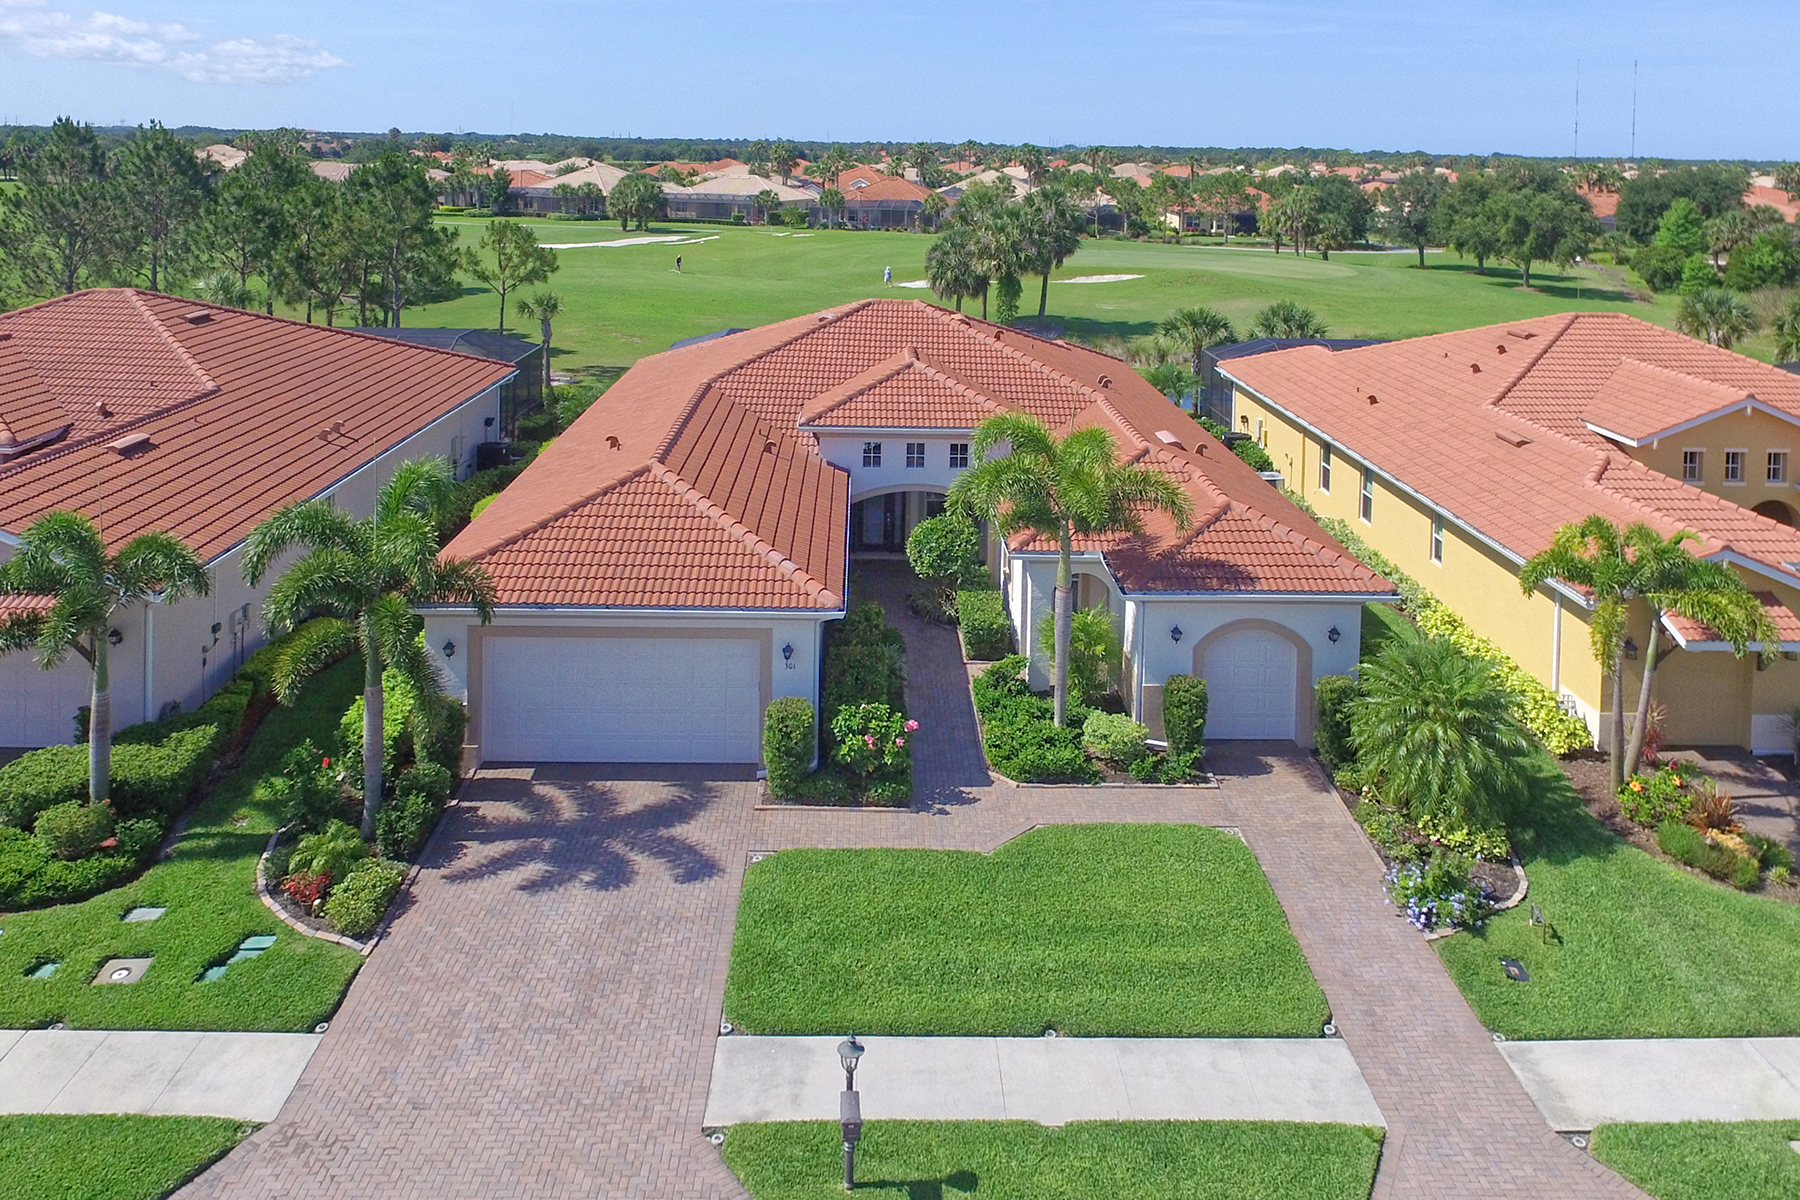 Villa per Vendita alle ore VENETIAN GOLF & RIVER CLUB 301 Martellago Dr North Venice, Florida, 34275 Stati Uniti